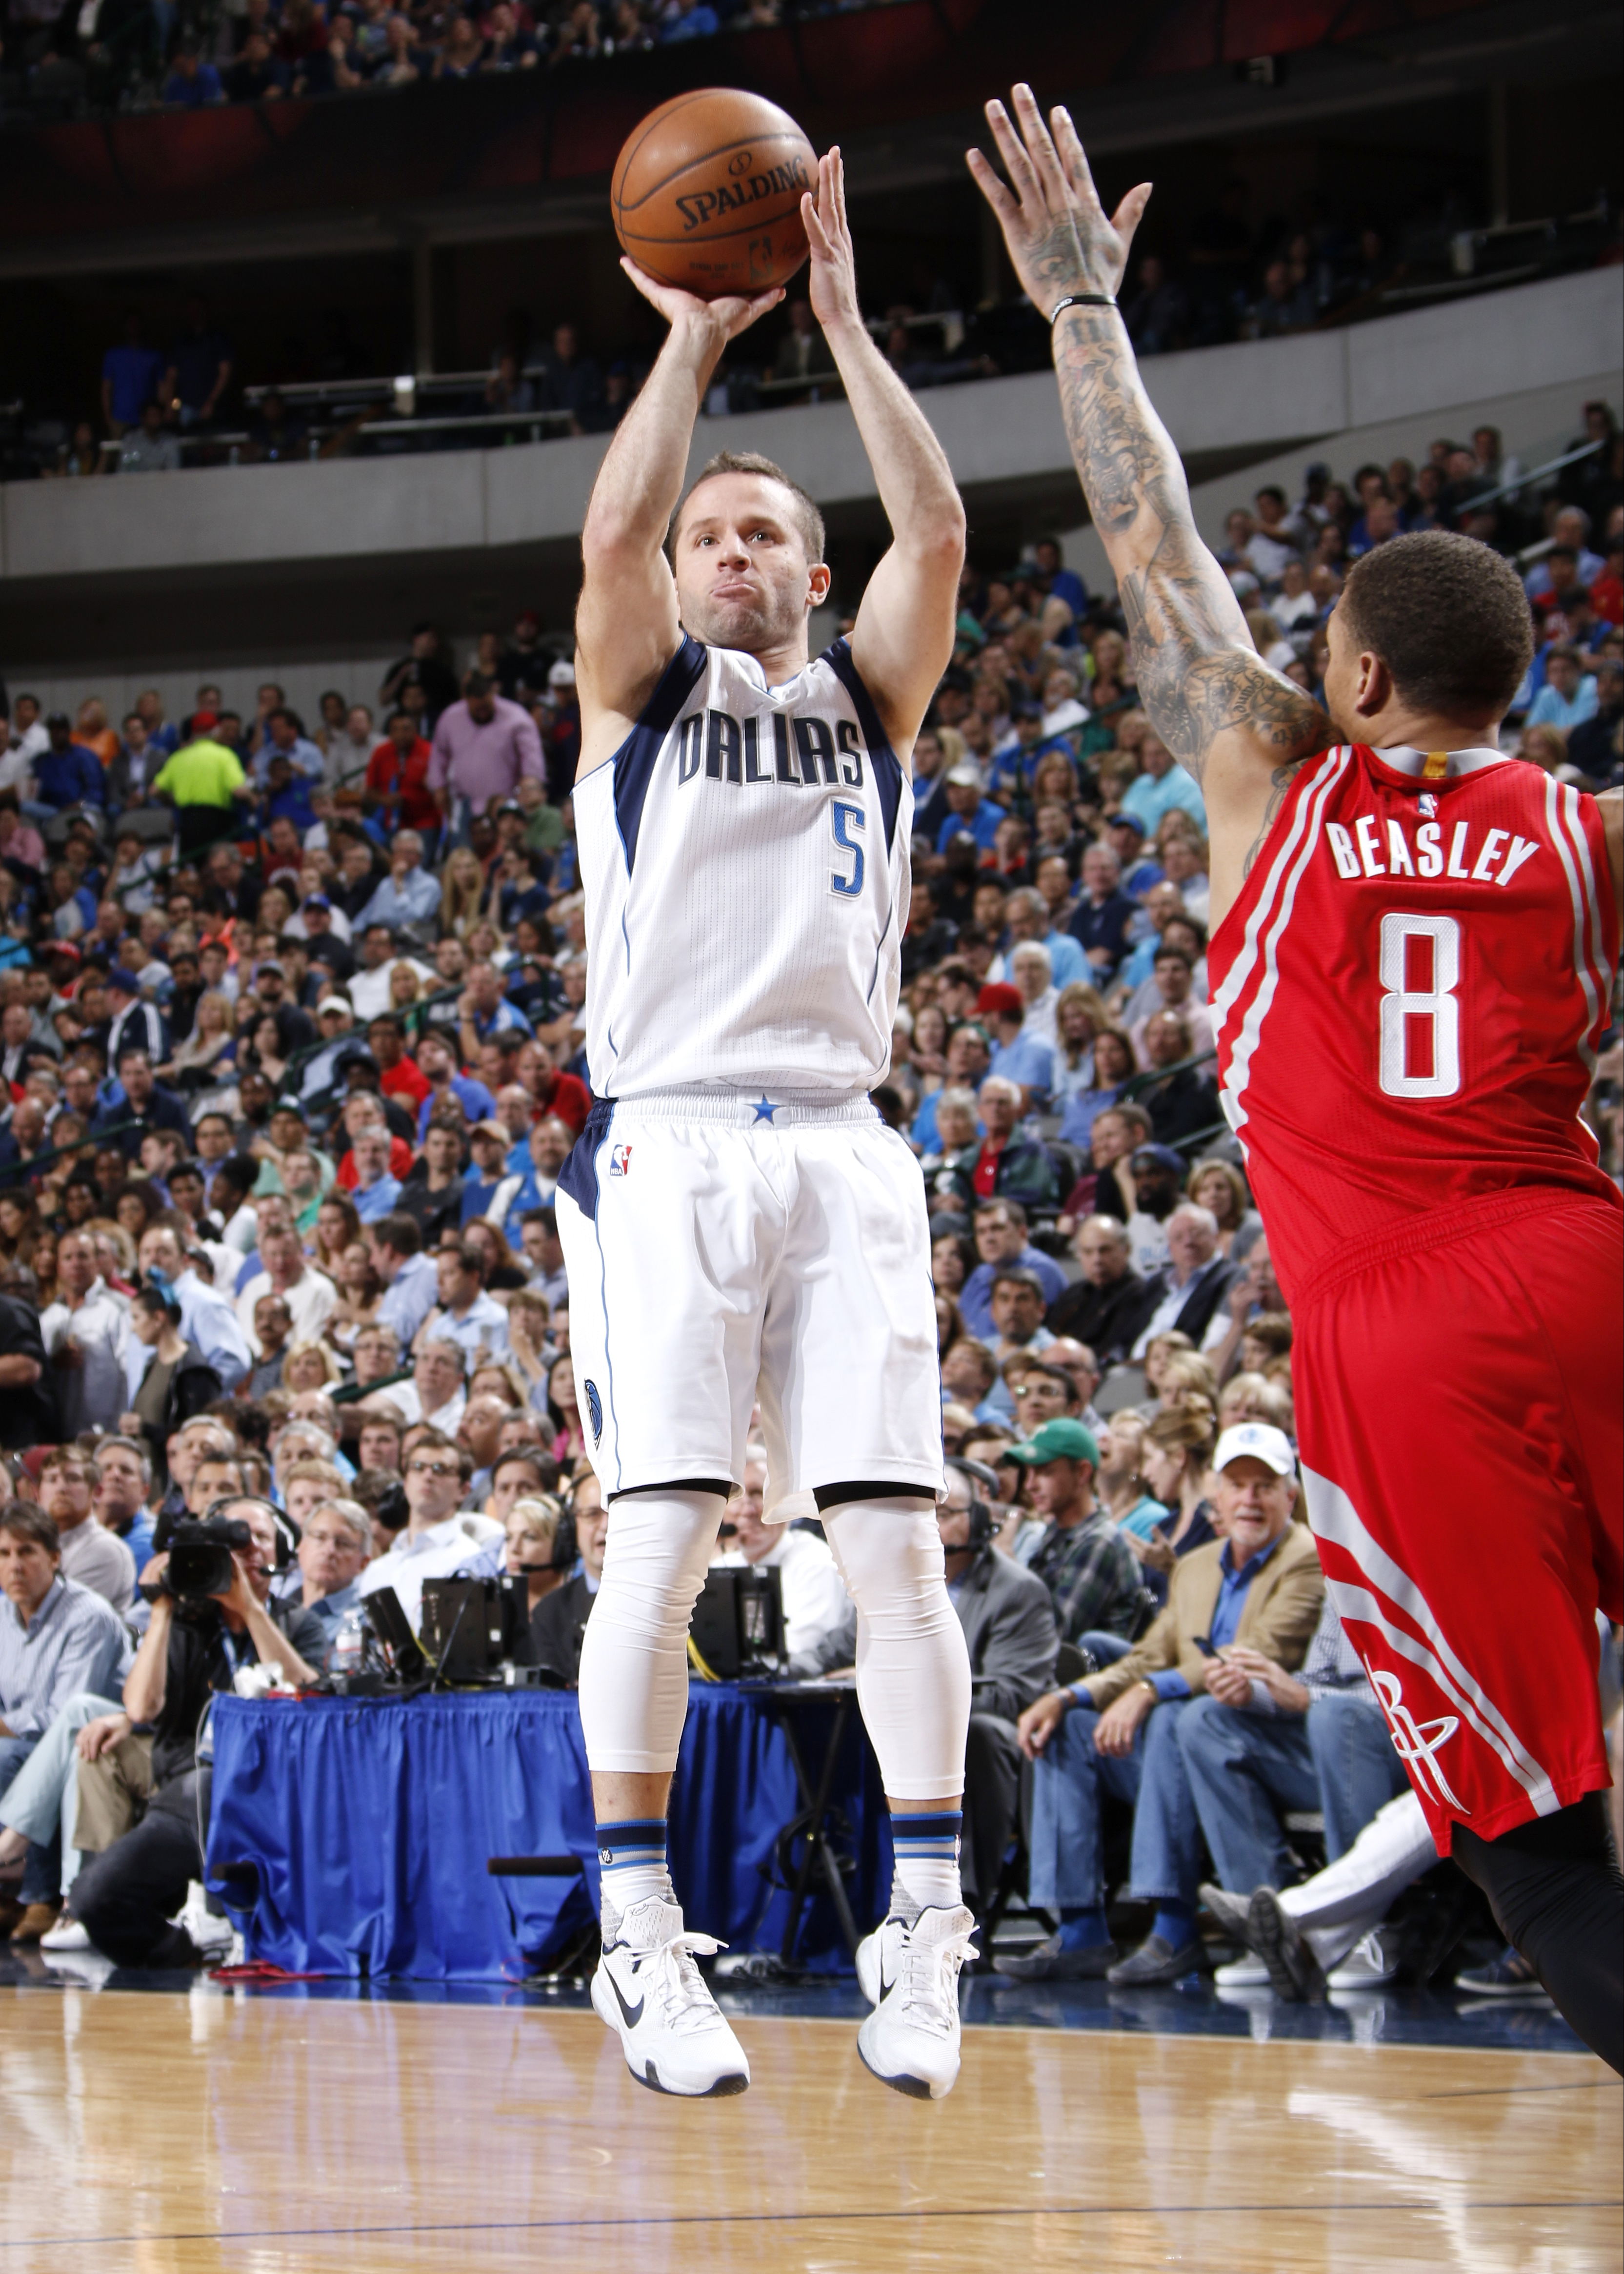 DALLAS, TX - APRIL 6: Jose Juan Barea #5 of the Dallas Mavericks shoots a jumper against the Houston Rockets on April 6, 2016 at the American Airlines Center in Dallas, Texas. (Photo by Glenn James/NBAE via Getty Images)